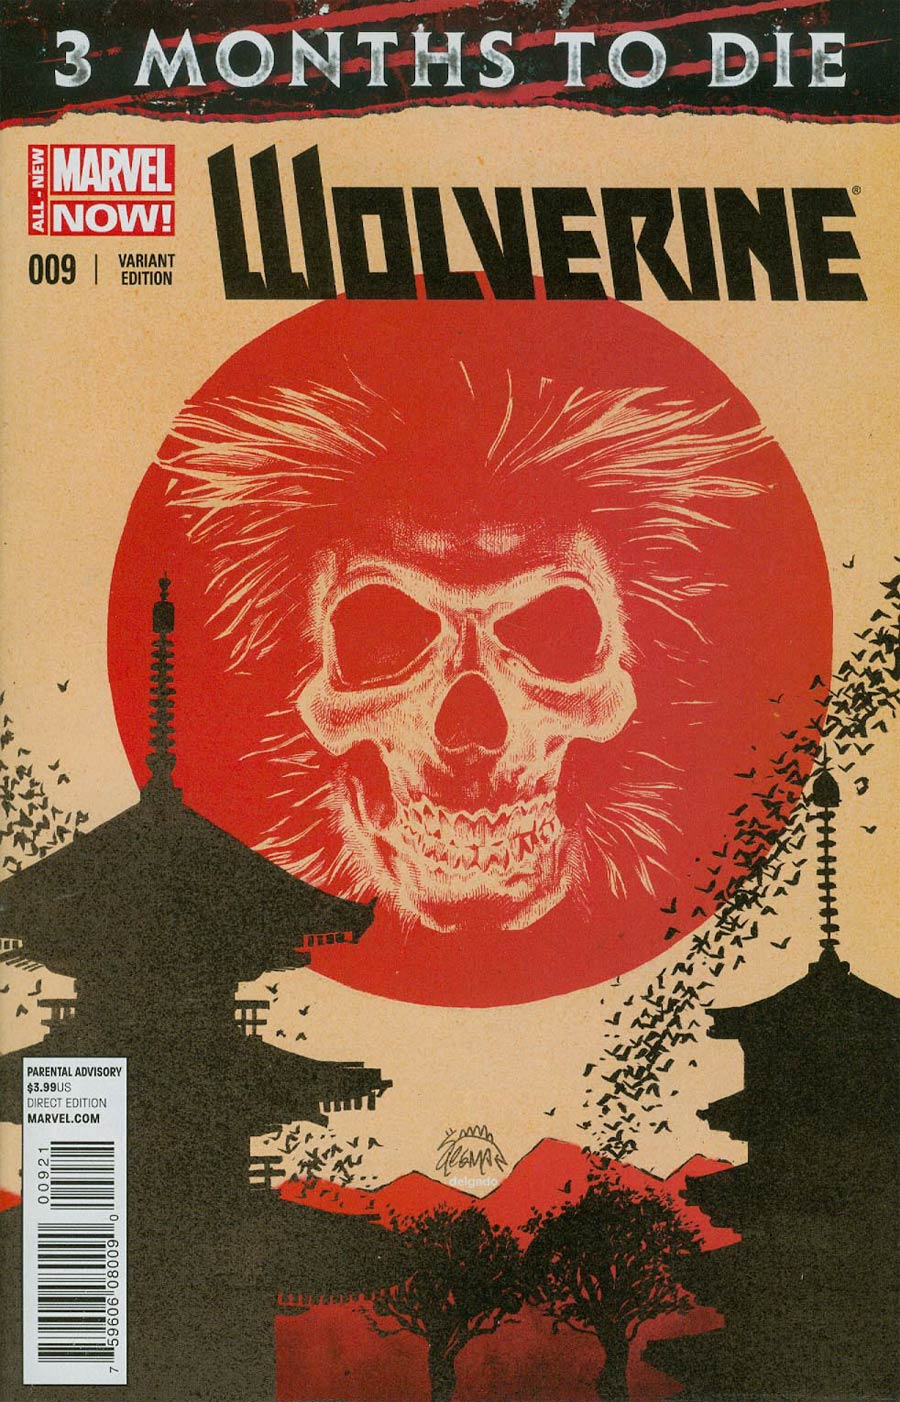 Wolverine Vol 6 #9 Cover B Incentive Ryan Stegman Variant Cover (3 Months To Die Part 2)